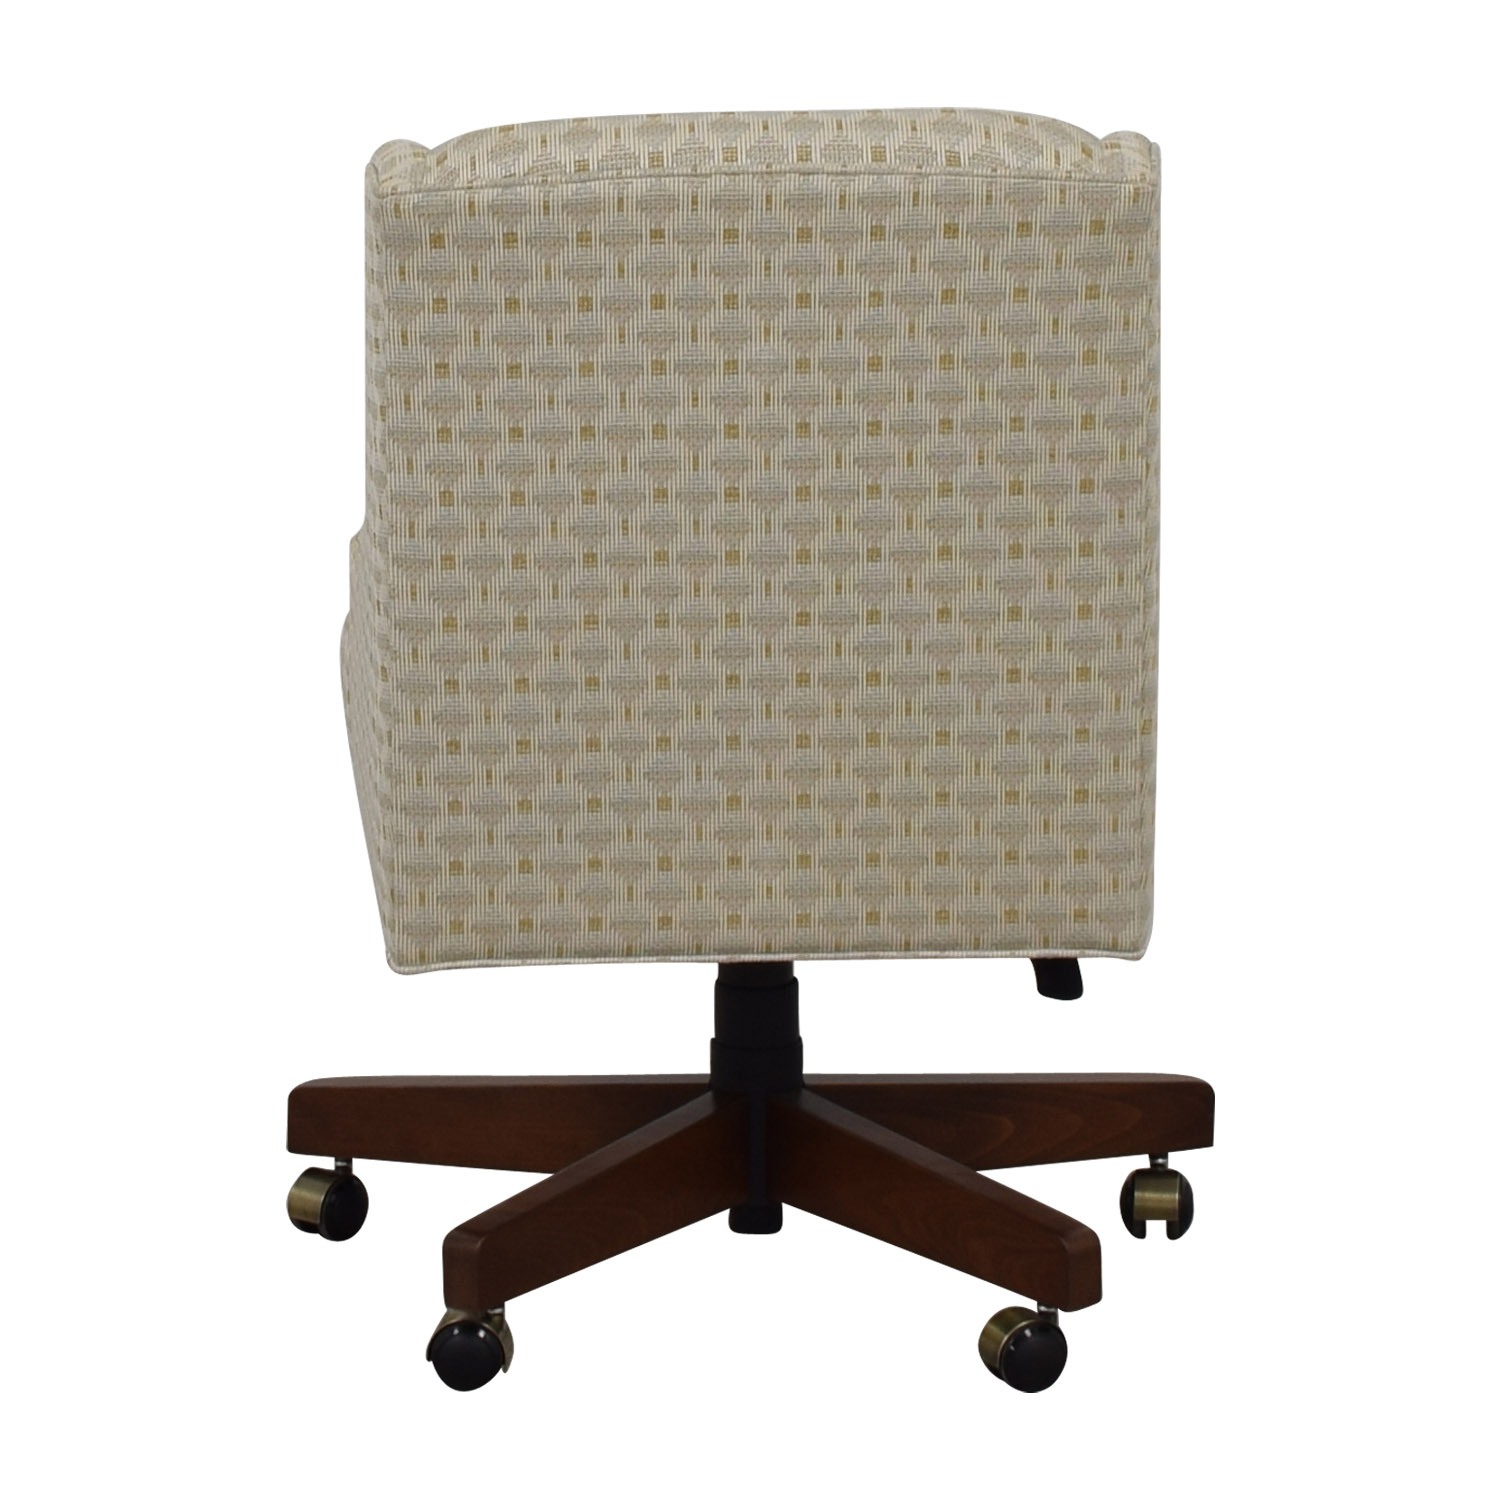 Ethan Allen Ethan Allen Beige Upholstered Office Chair on Castors second hand